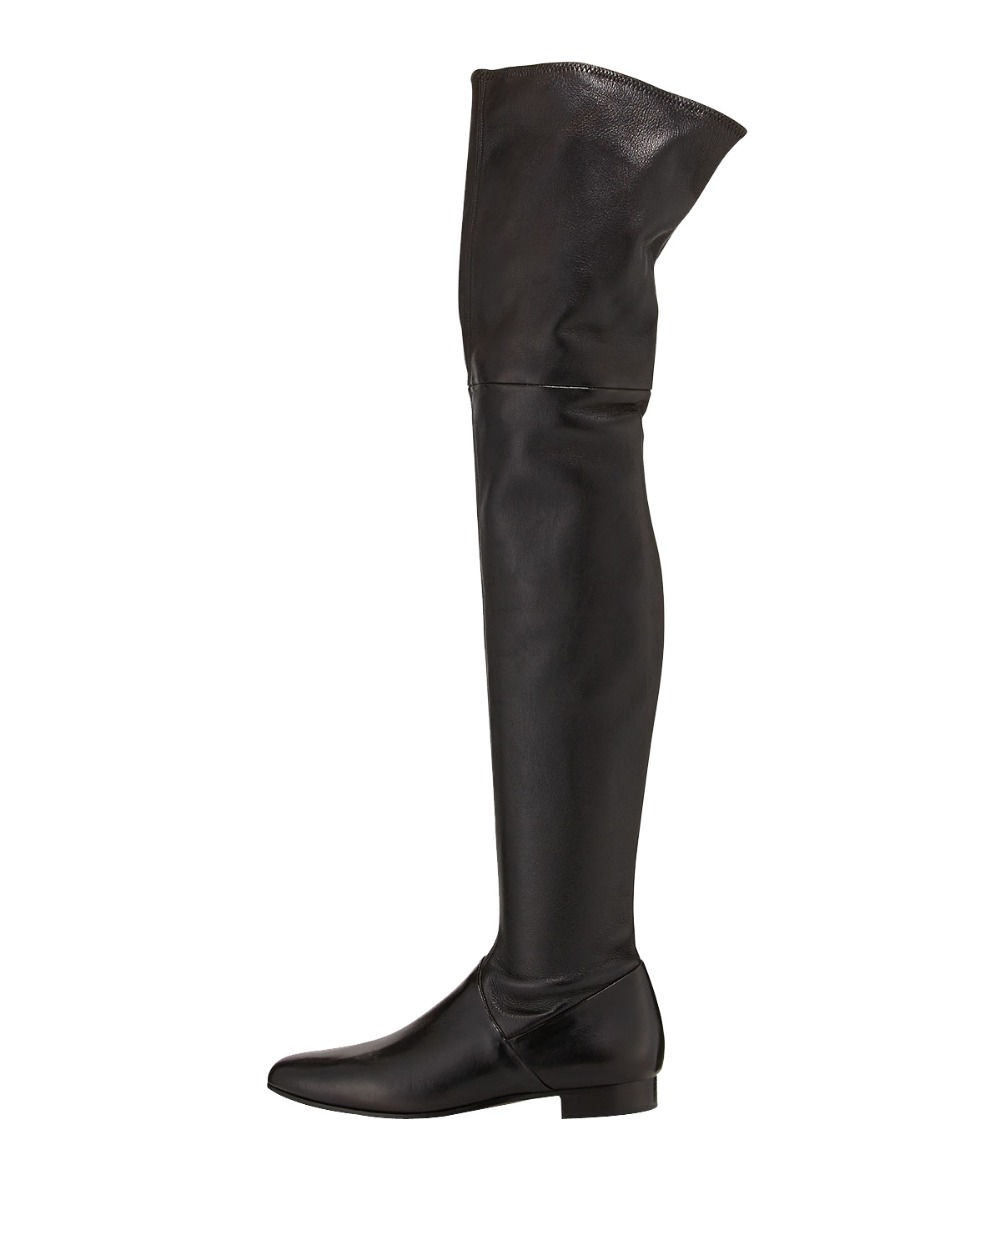 High-quality Women Over-Knee Boots Sheepskin 2.5cm Square Heels Fashion Boots Black Customizable Shoes Woman Plus Size 4-15